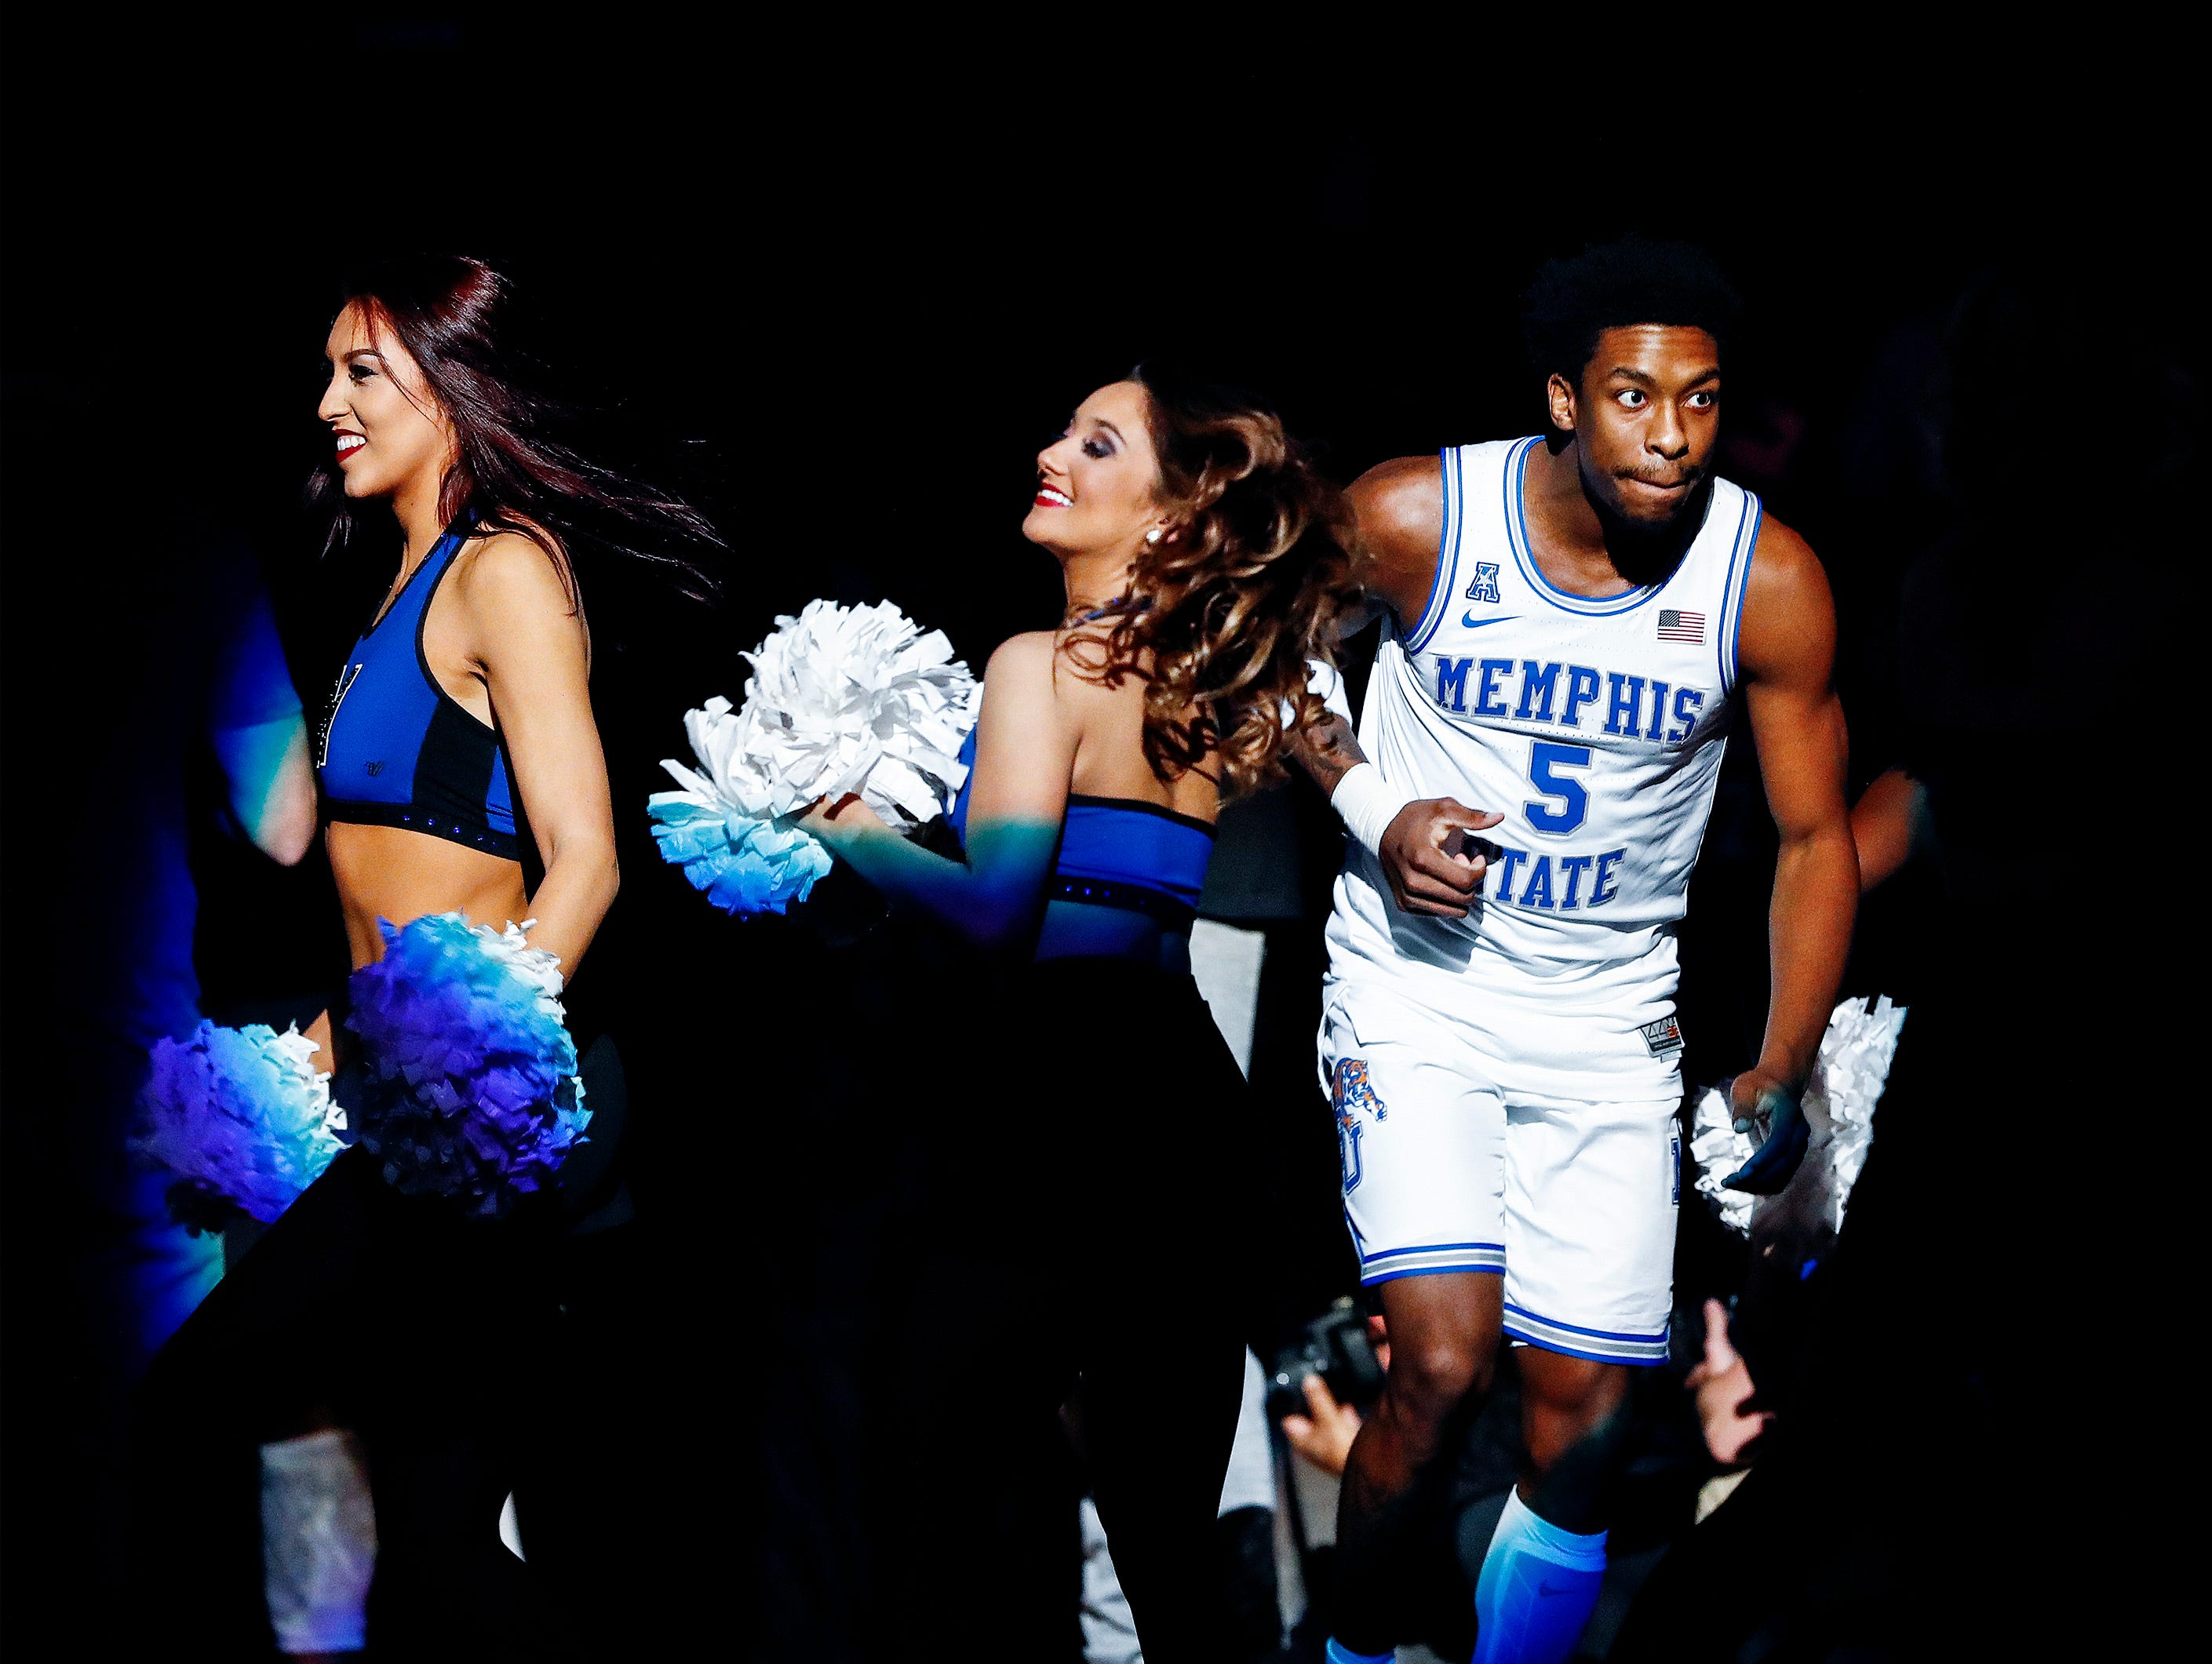 Memphis guard Kareem Brewton Jr. is introduced before taking on Temple at the FedExForum, Tuesday, February 26, 2019.